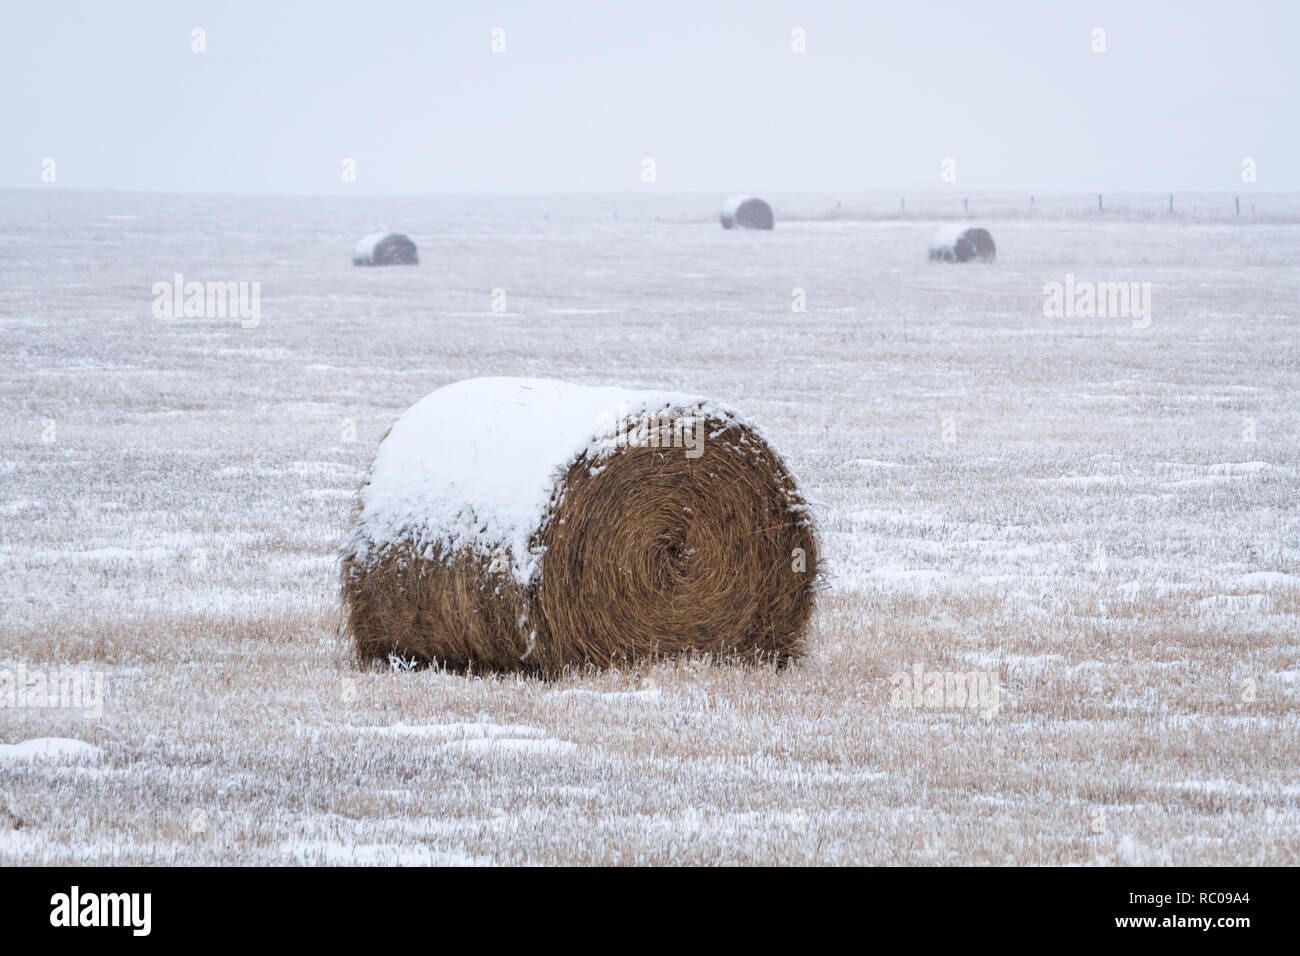 Bales of hay and field are partially covered with snow on cloudy winter day in rural Alberta, Canada. Stock Photo